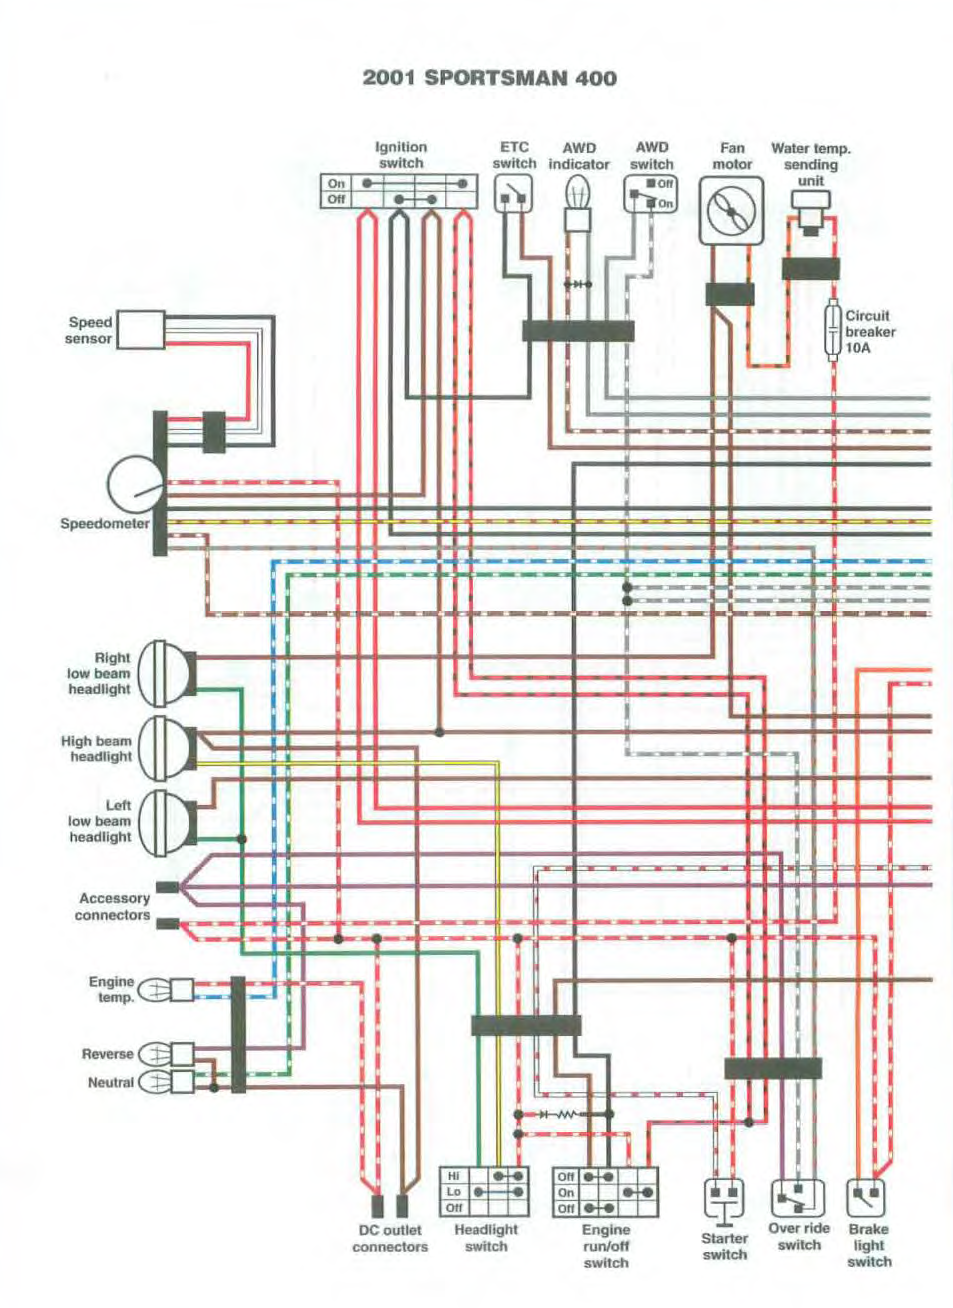 DIAGRAM] 2007 Polaris Sportsman 500 Adc Wiring Diagram FULL Version HD  Quality Wiring Diagram - EASYSOLARPANELDIAGRAM.BELLEILMERSION.FReasysolarpaneldiagram.belleilmersion.fr